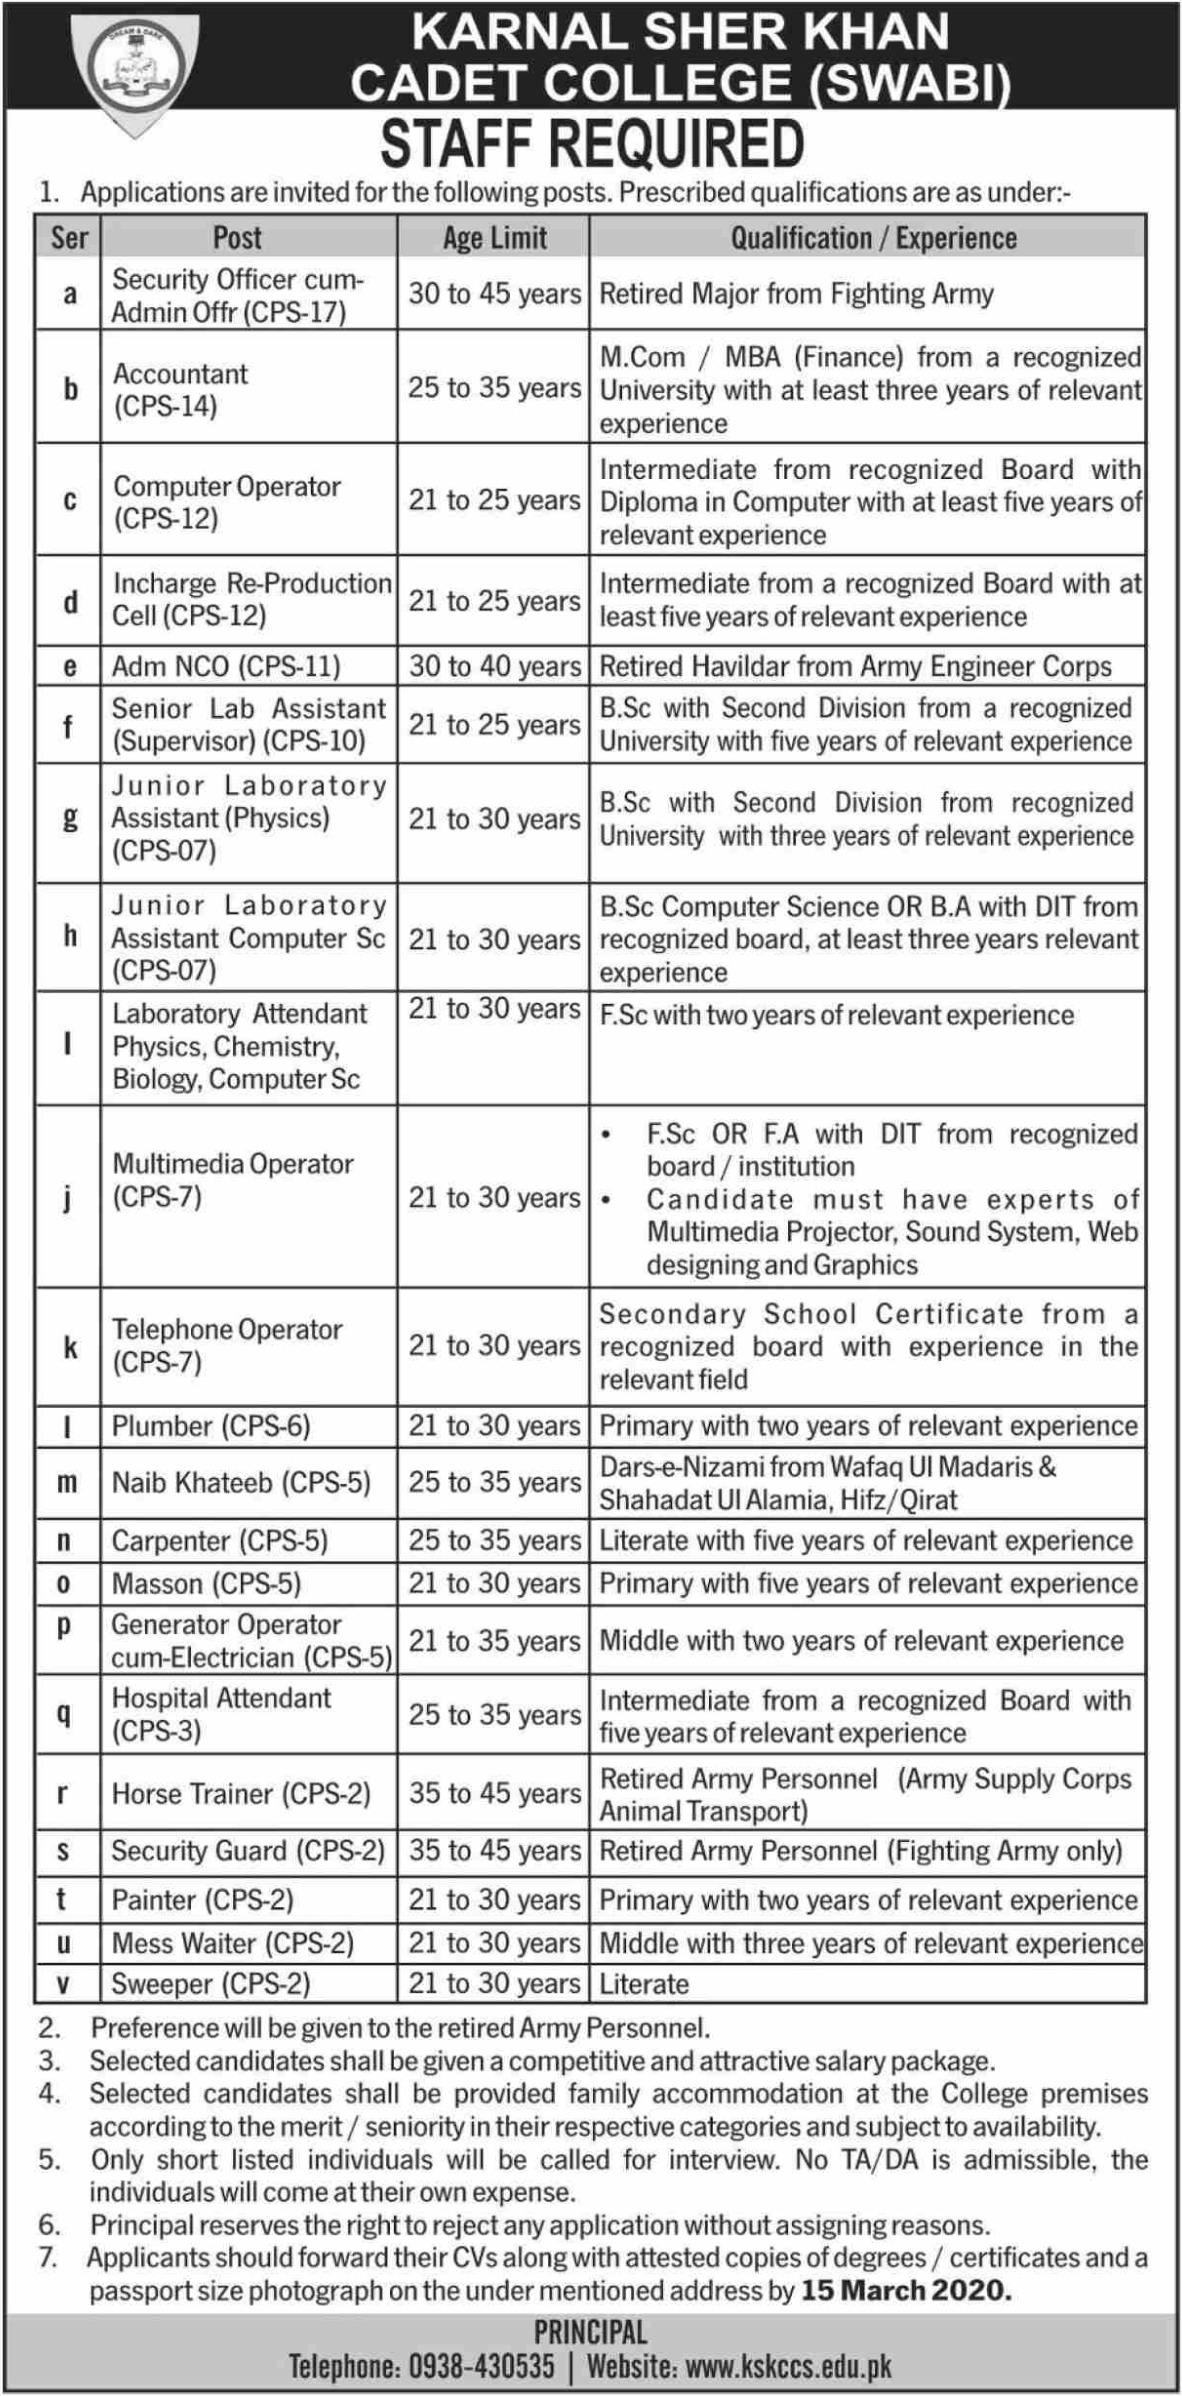 Karnal Sher Khan Cadet College Swabi Jobs 2020